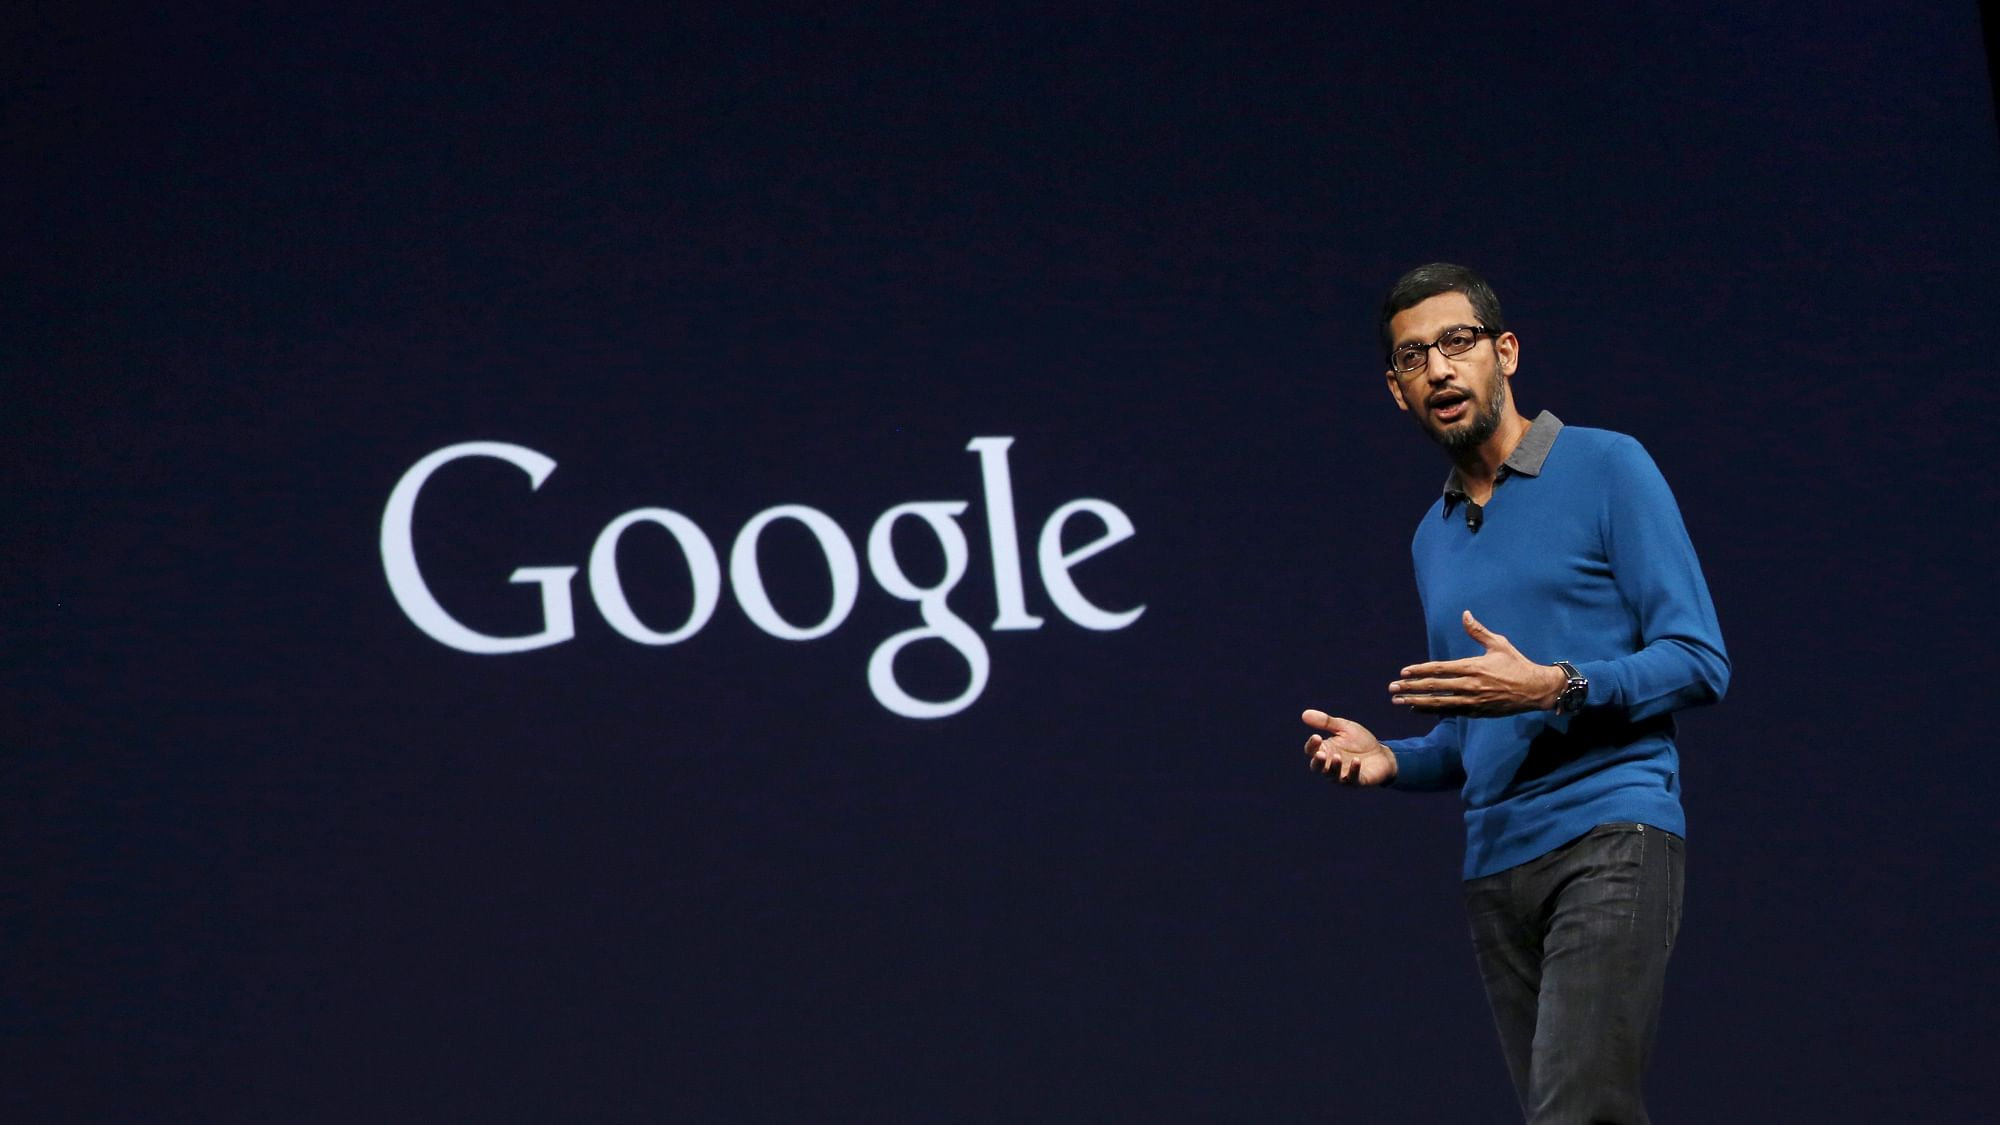 Competition Commission of India invites Start-ups' views on Google's monopoly Picture